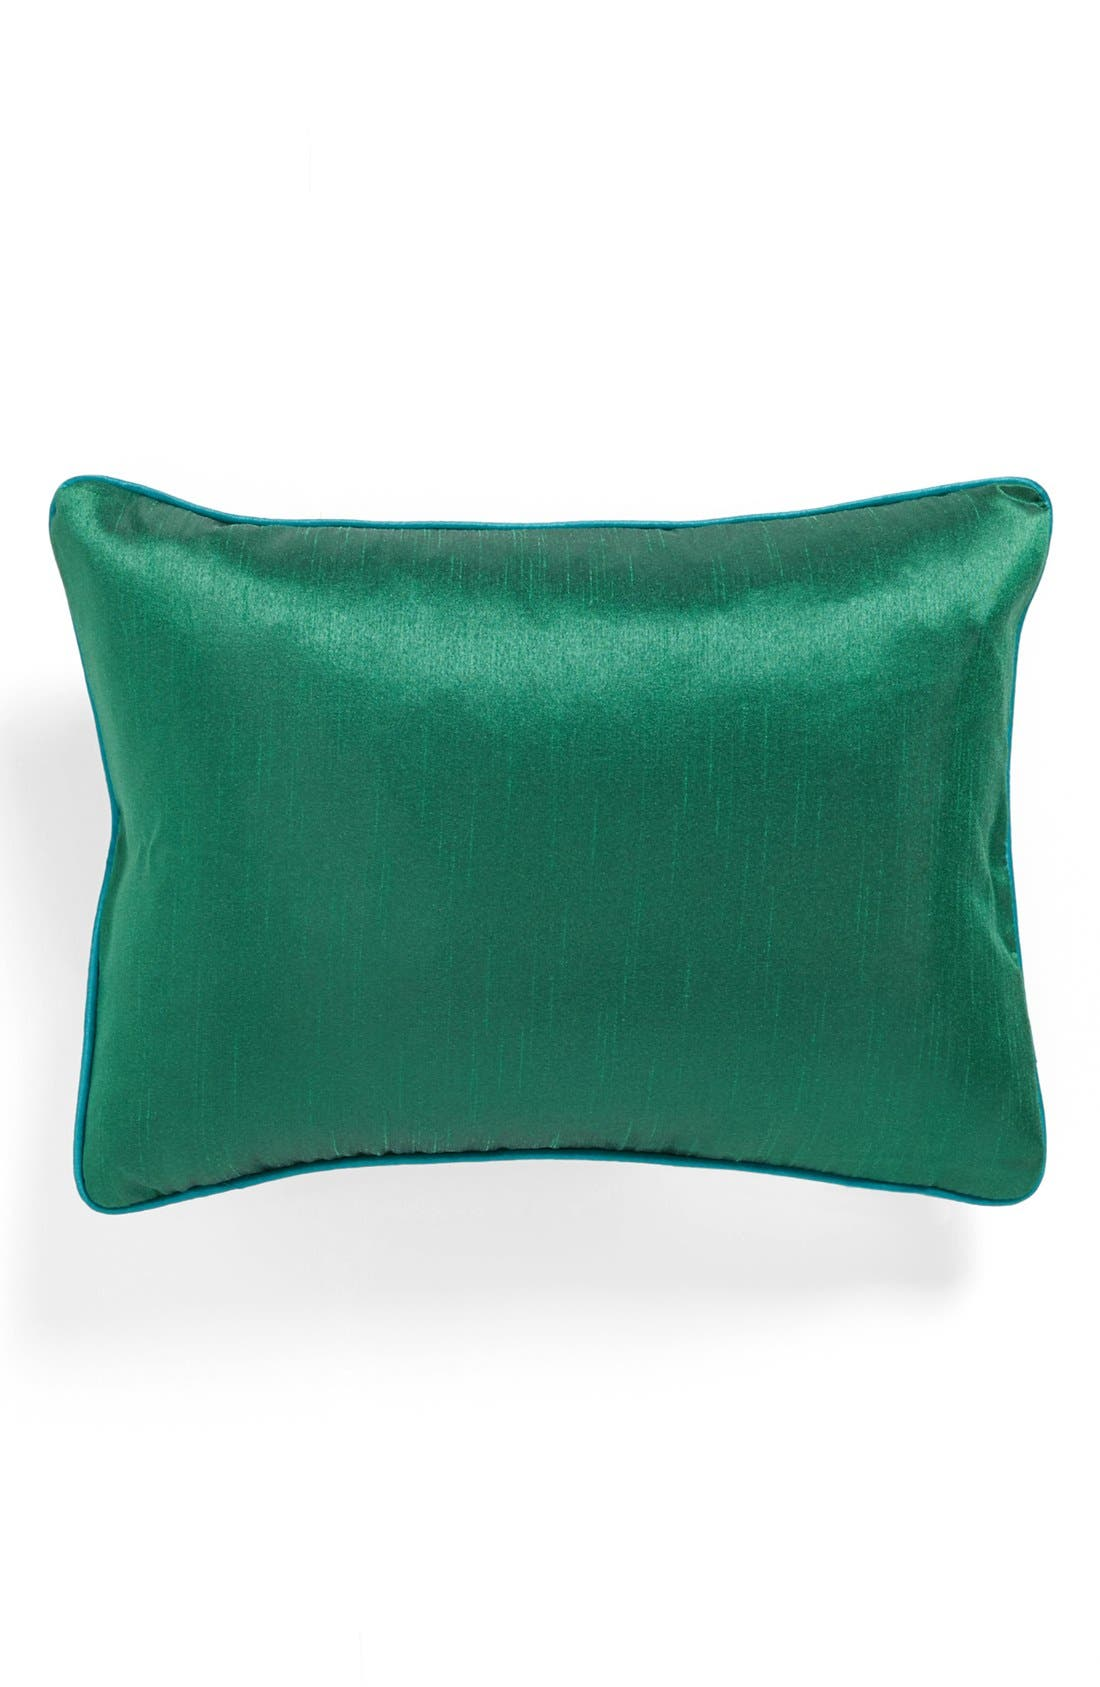 Main Image - Poetic Wanderlust 'Brianna' Faux Silk Pillow